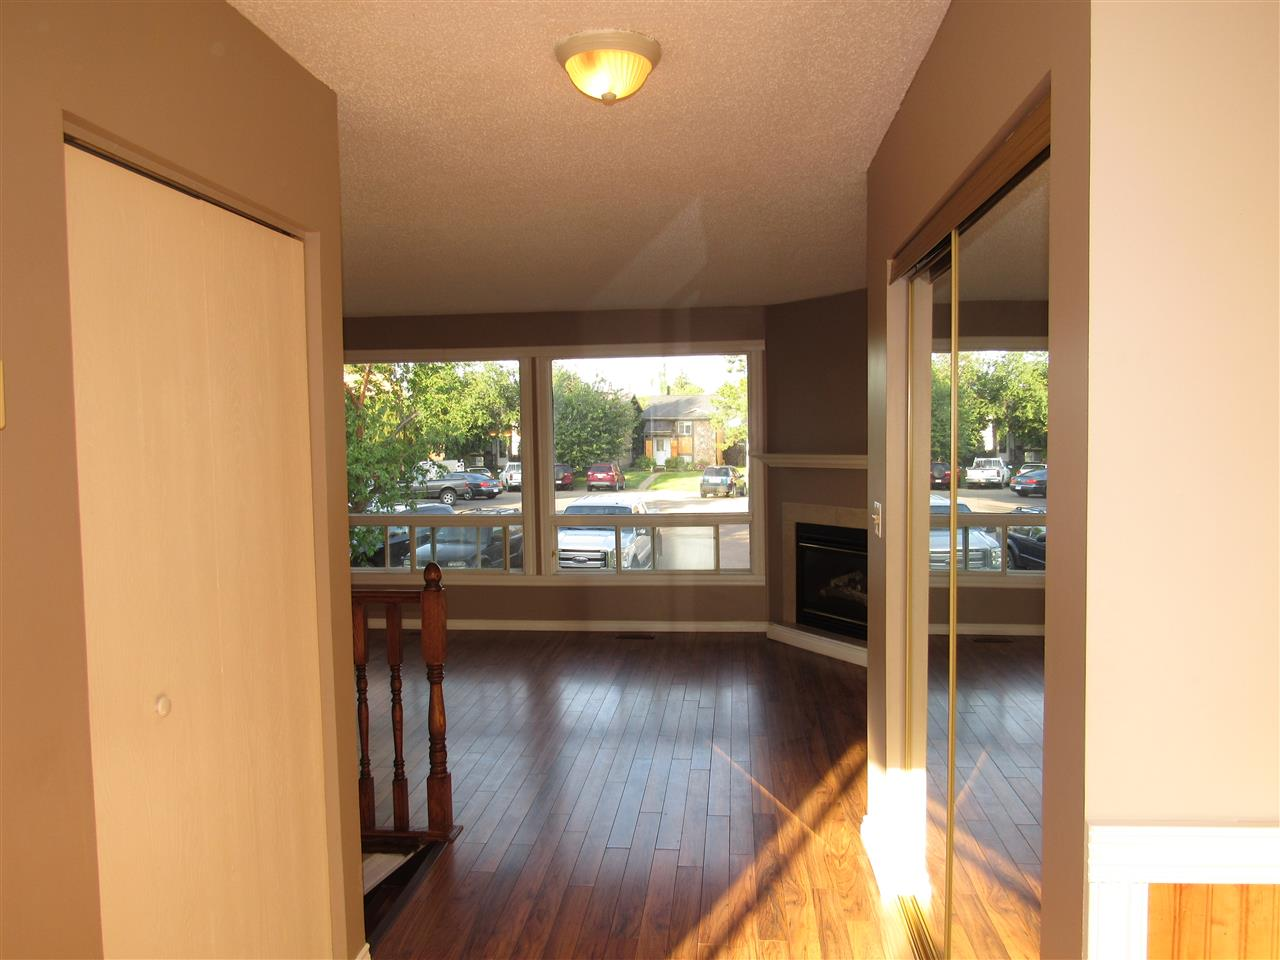 Photo 9: 3658 43A Avenue in Edmonton: Zone 29 House for sale : MLS(r) # E4072229